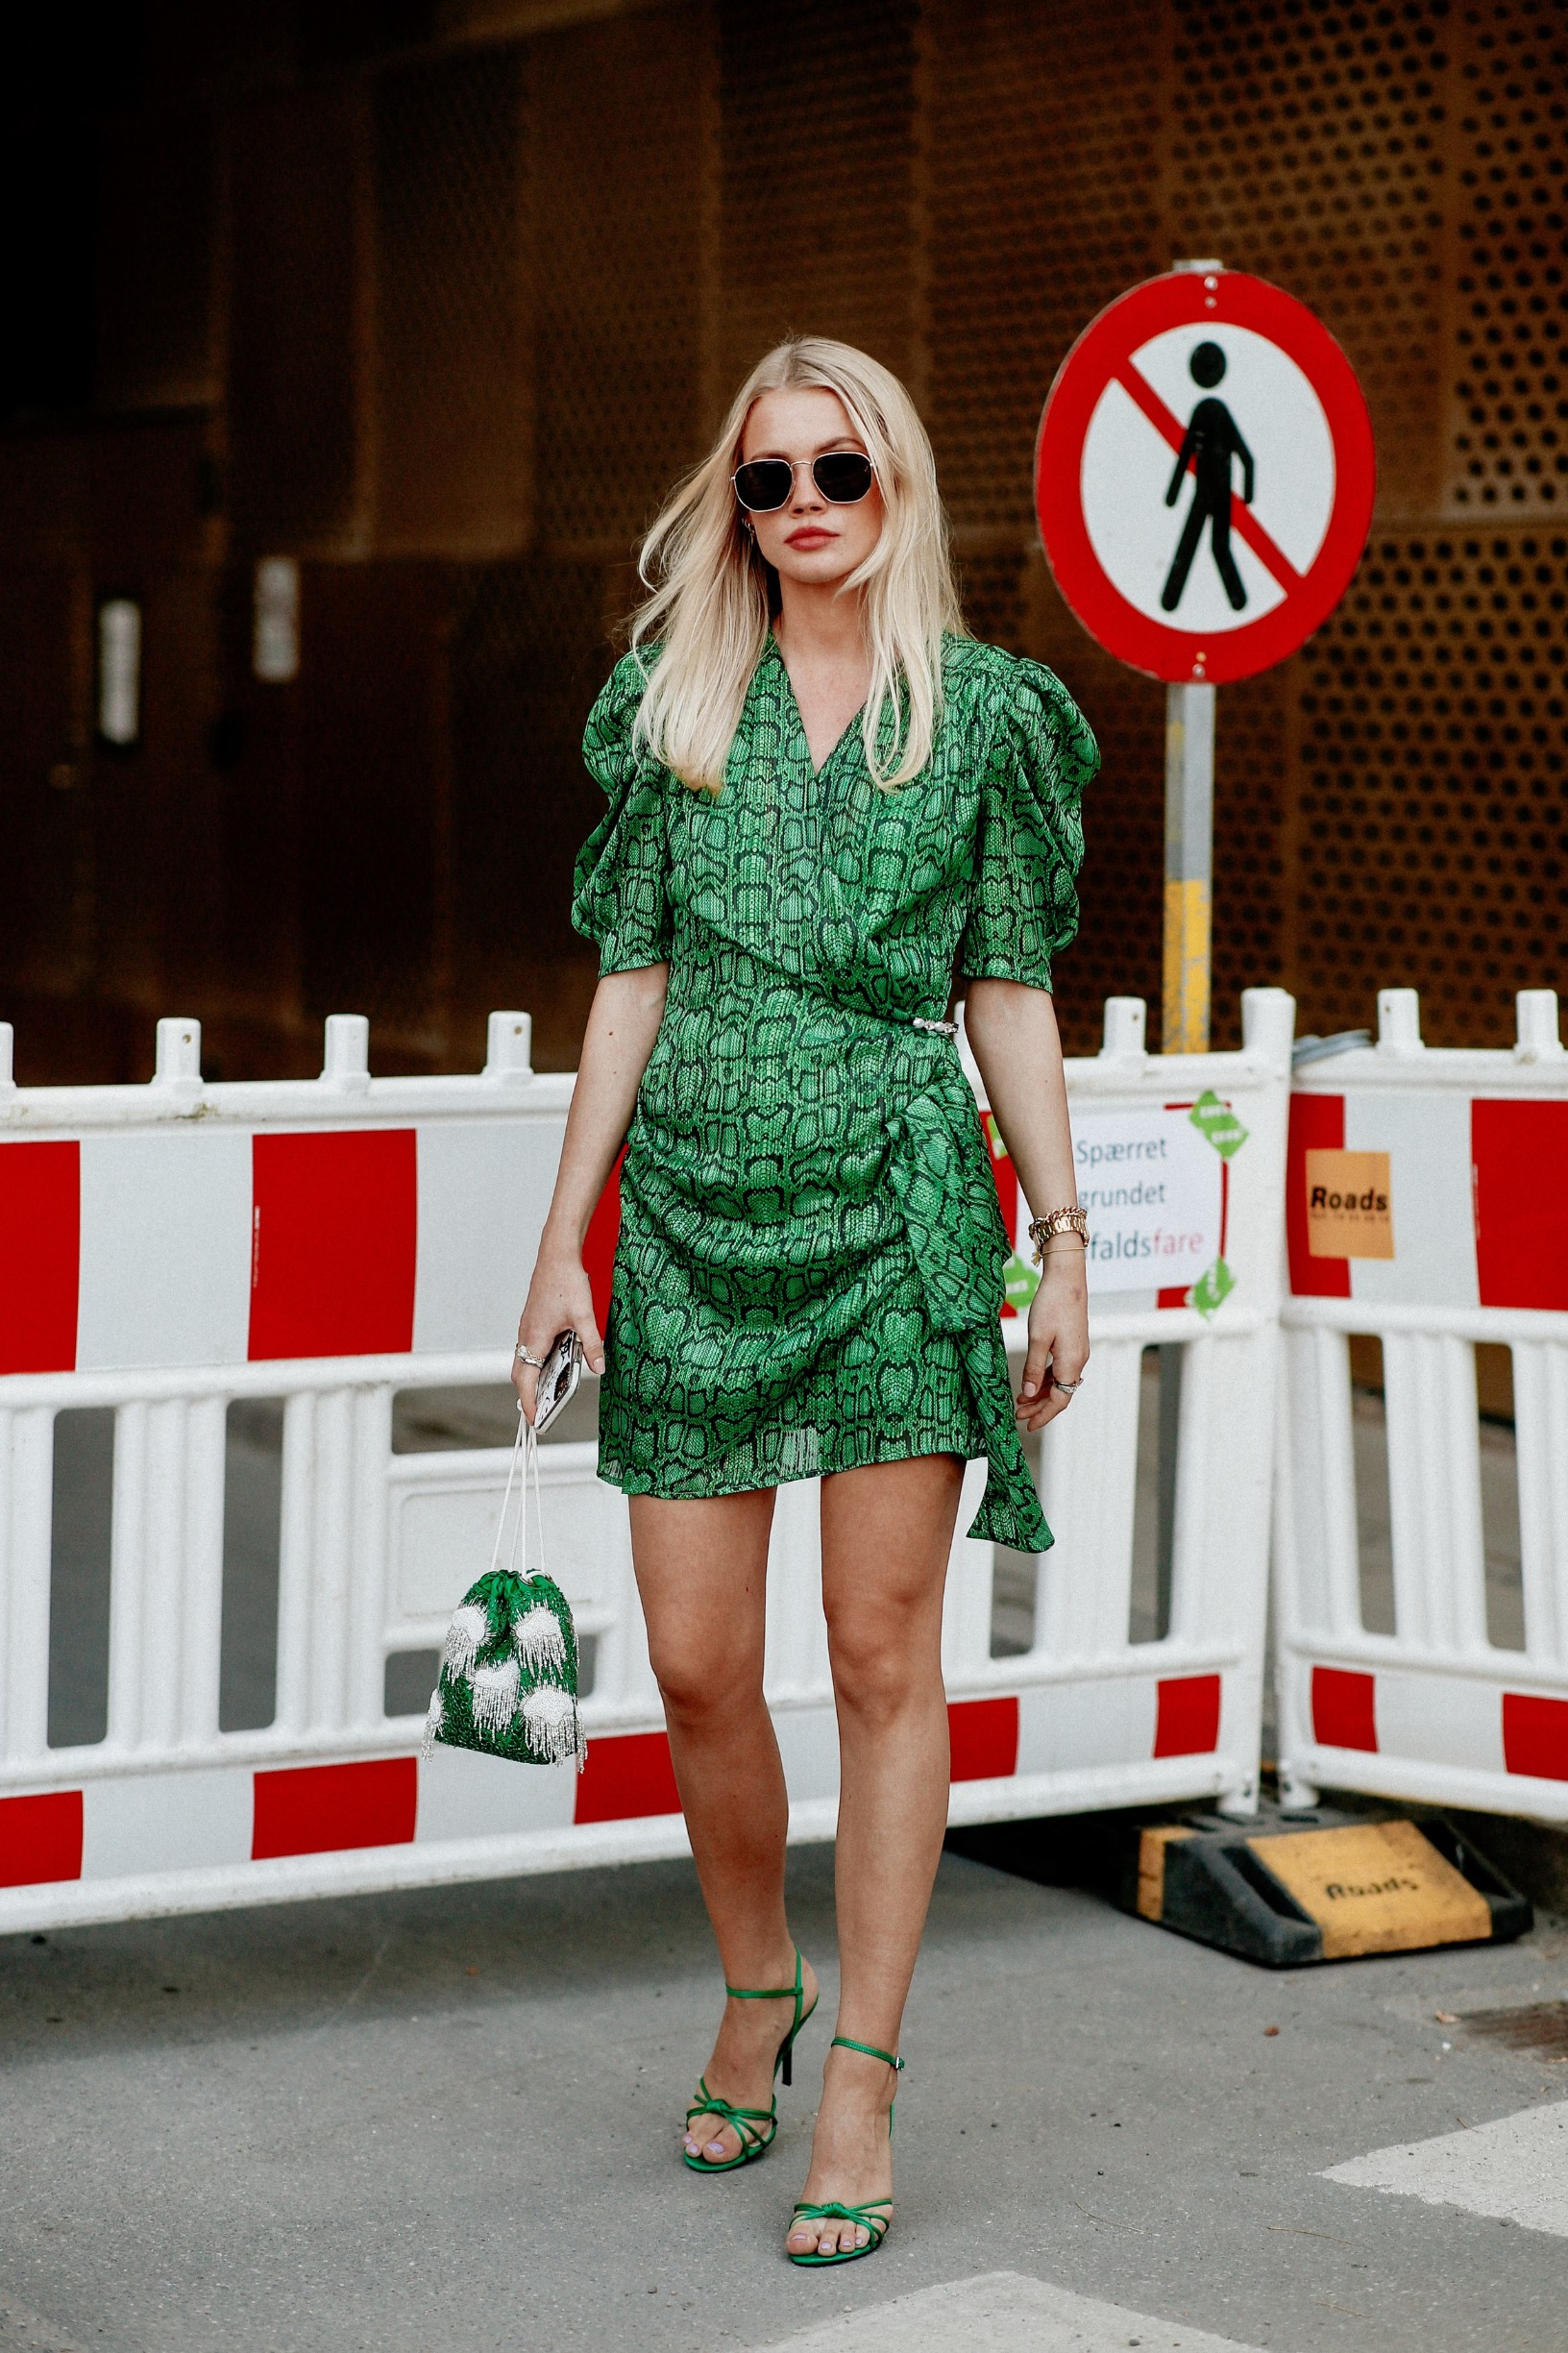 Street style, Andrea Steen arriving at Henrick Vibskov Spring Summer 2021 show, held at Hanging Gardens, Copenhagen, Denmark, on August 12, 2020.,Image: 554929863, License: Rights-managed, Restrictions: , Model Release: no, Credit line: Bertrand-Hillion Marie-Paola/ABACA / Abaca Press / Profimedia